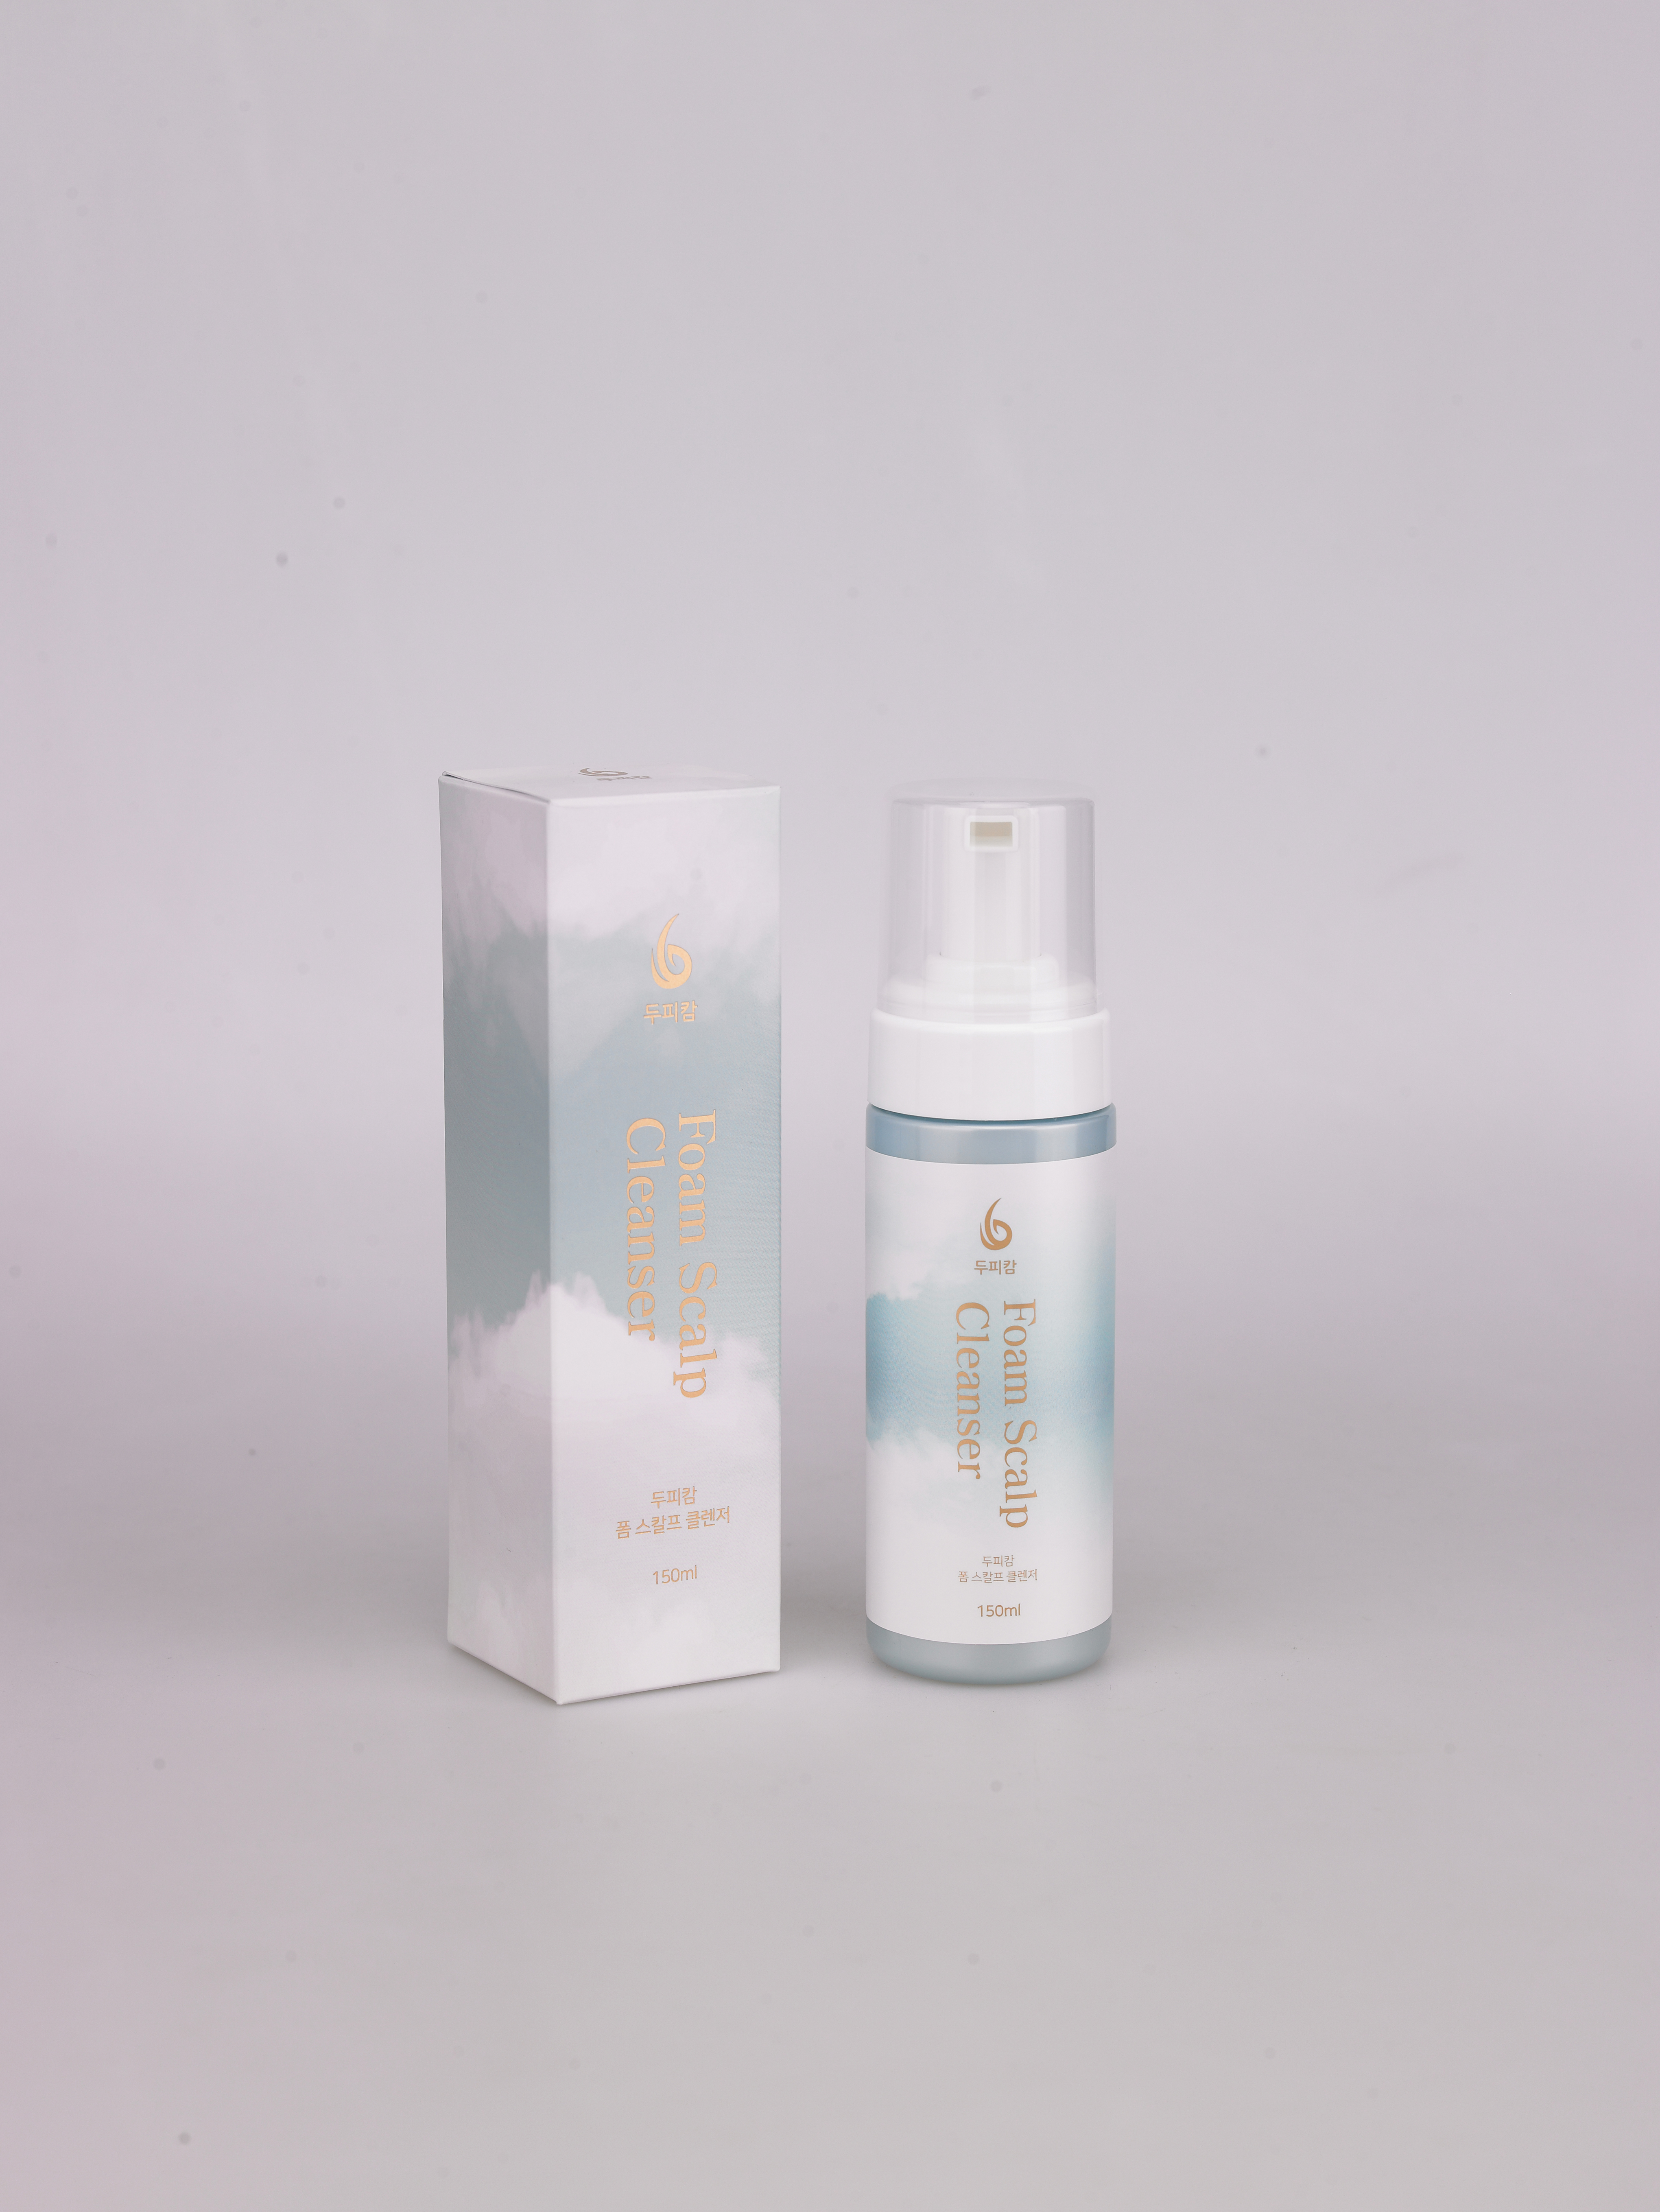 Scalp foam cleanser